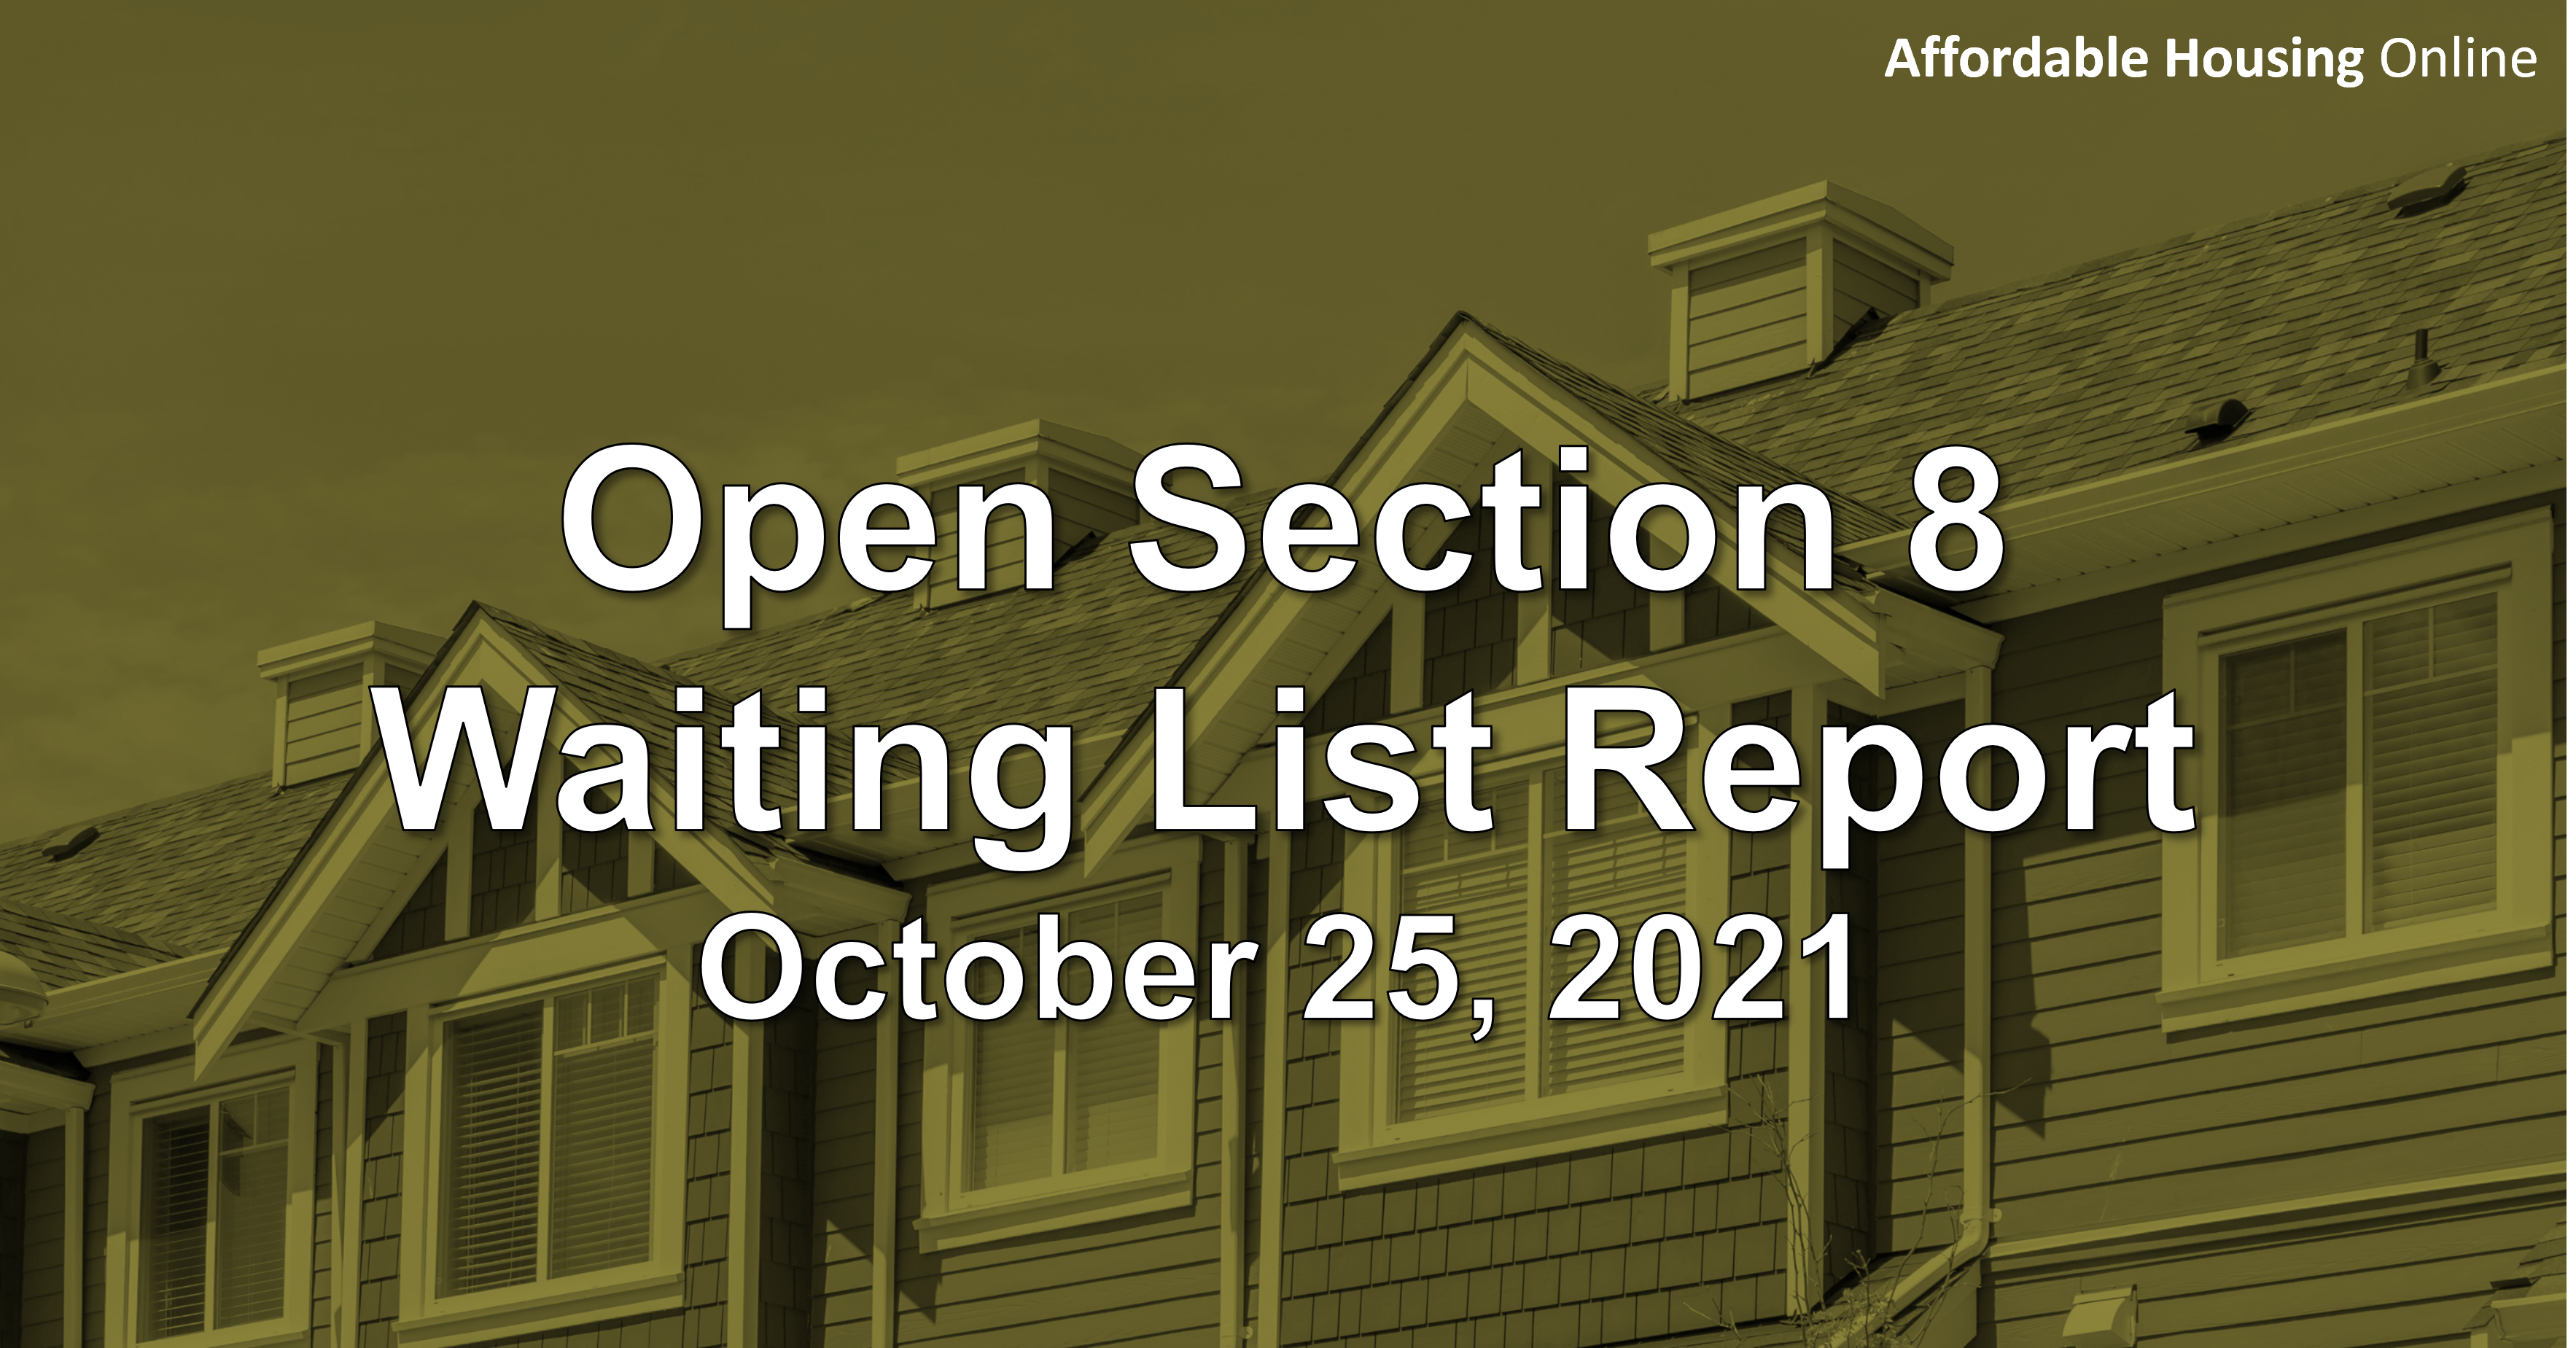 Open Section 8 Waiting List Report: October 25, 2021